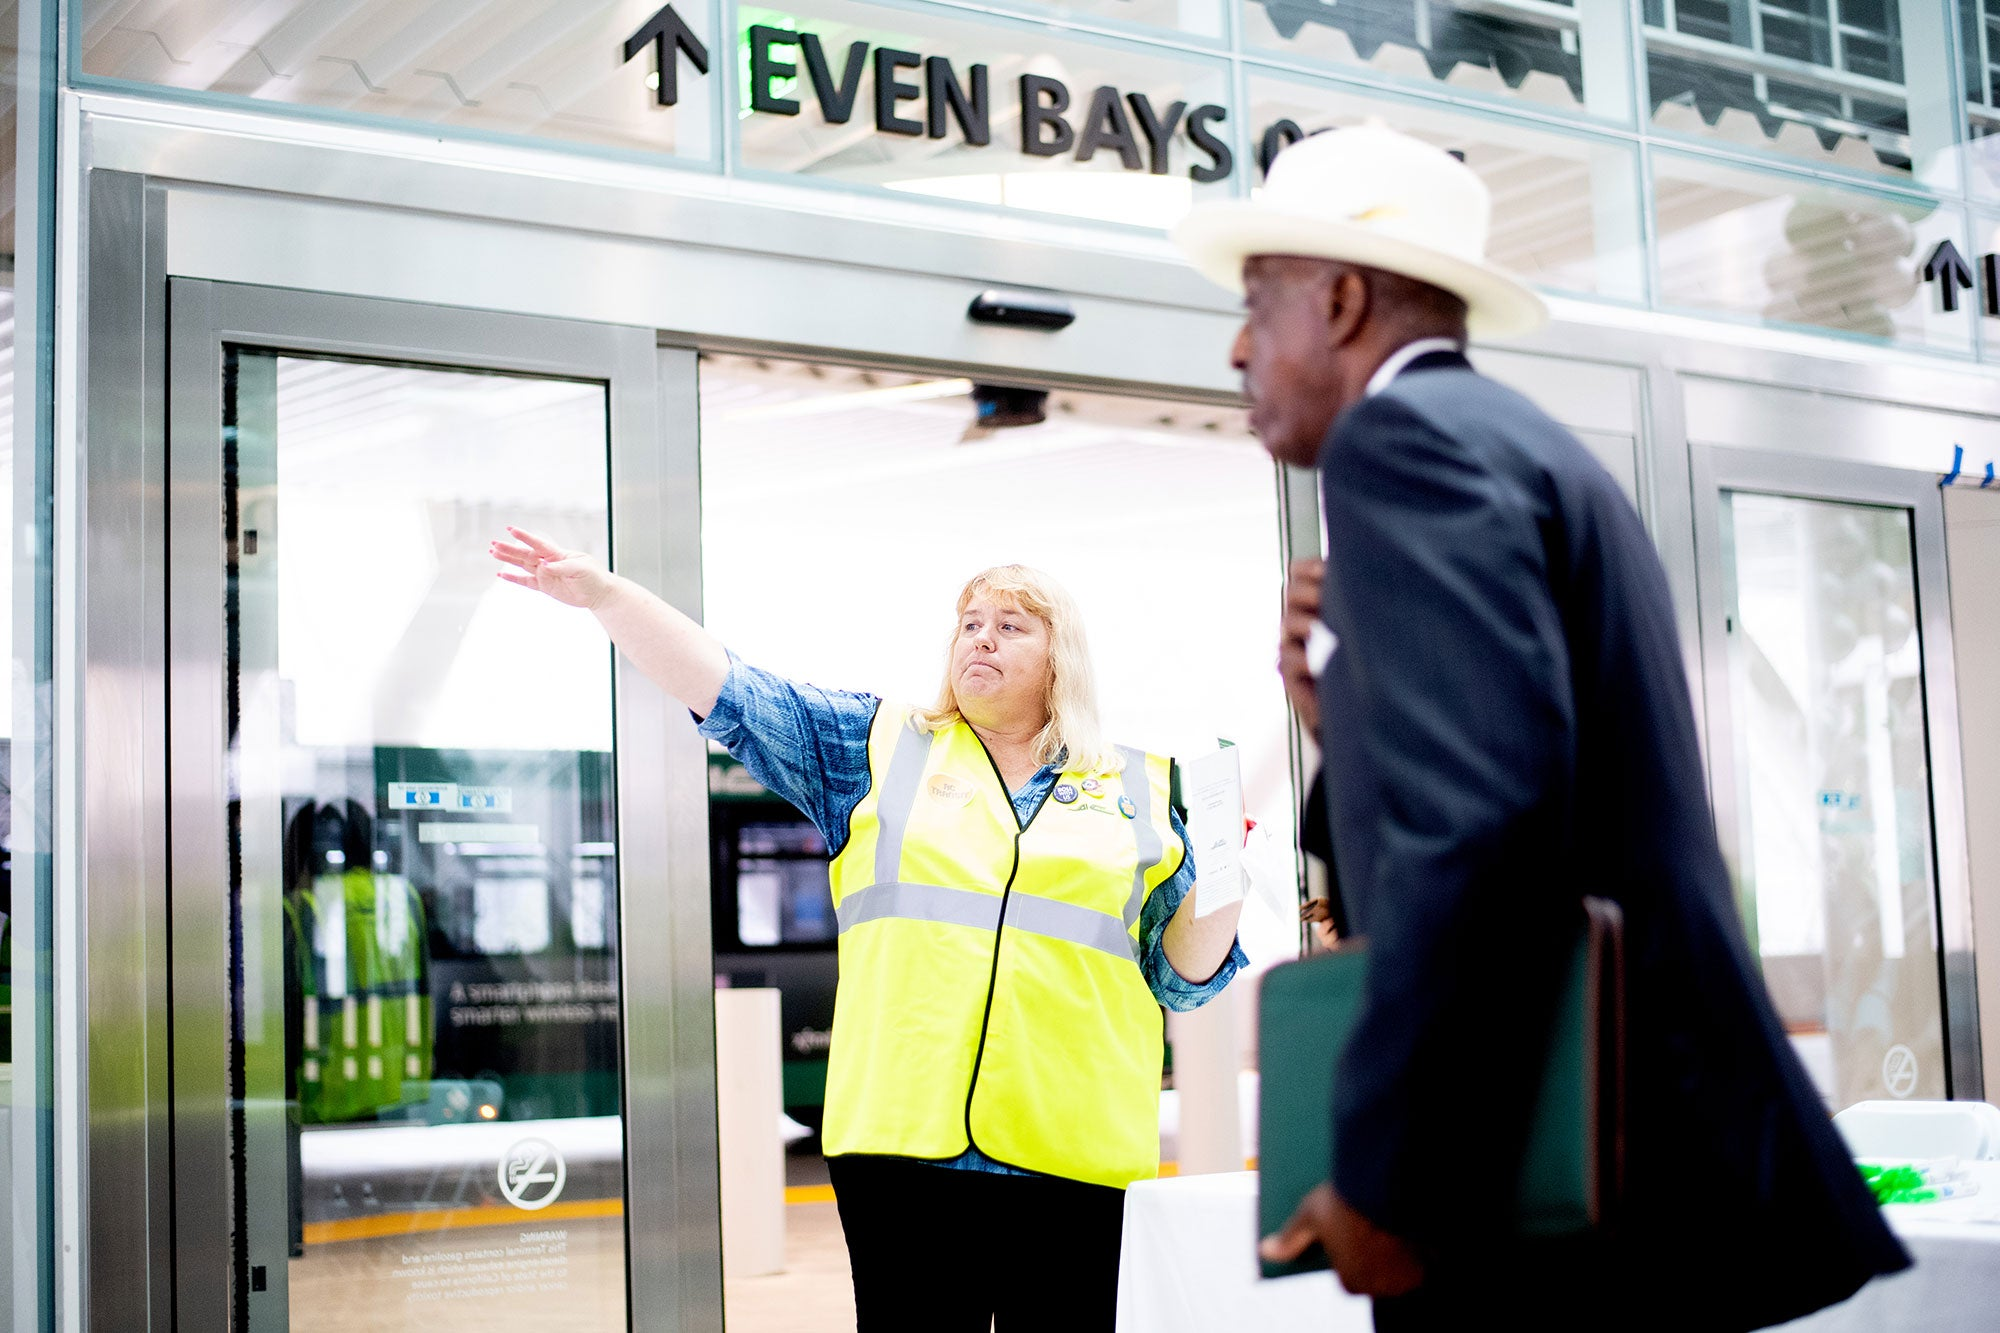 AC Transit ambassador Tammy Kyllo helps a commuter navigate the Salesforce Transit Center during the first day of AC Transit Service